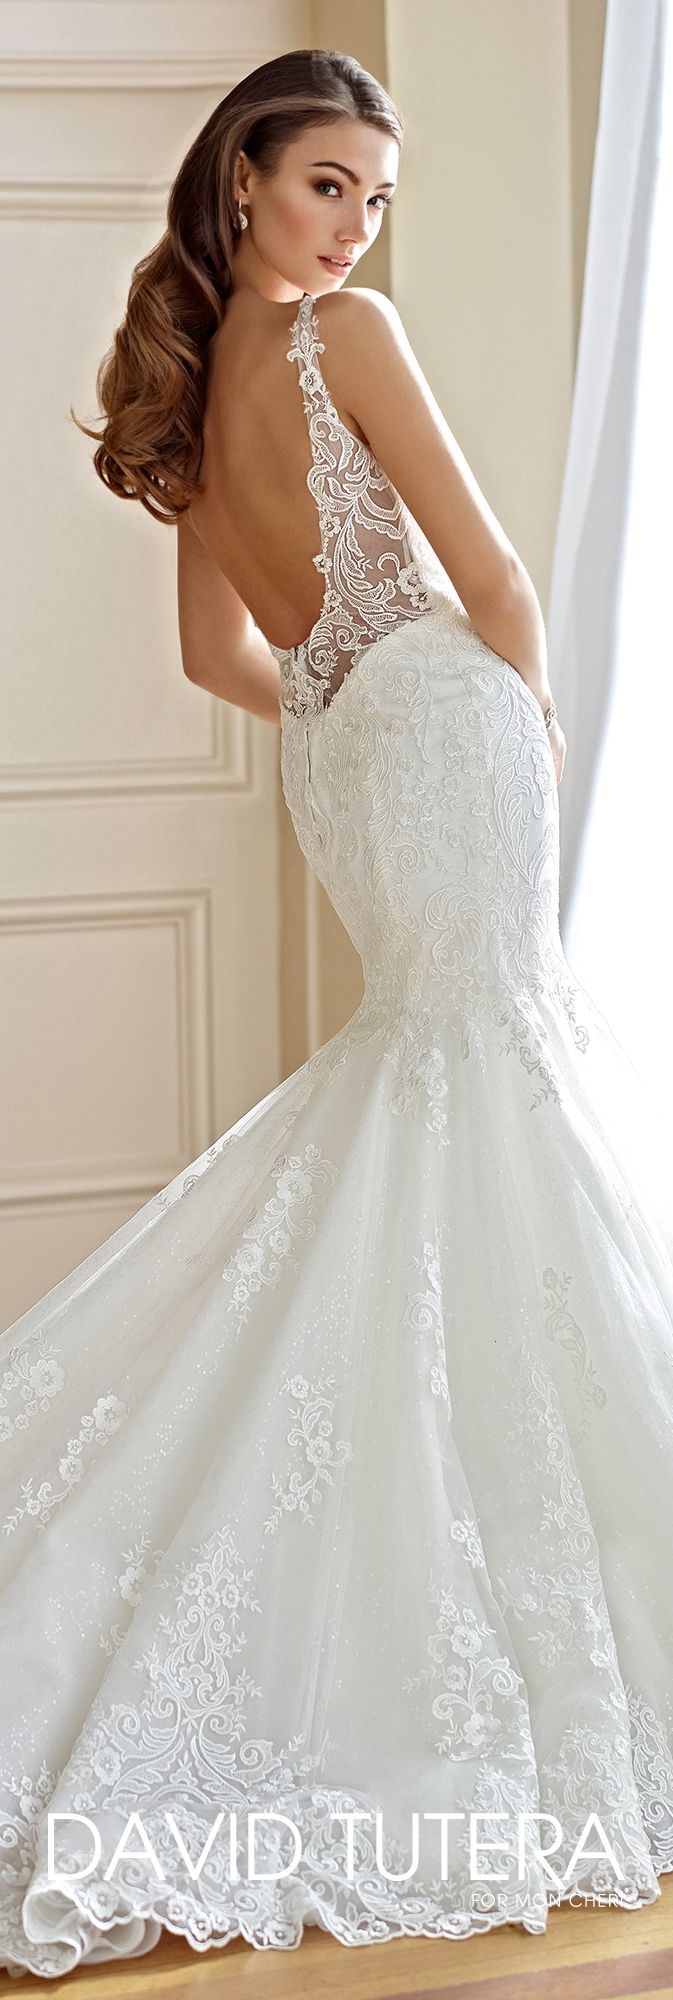 David Tutera for Mon Cheri Fall  2017 Collection - Style No. 217213 Mabel - sleeveless sequin tulle and lace trumpet wedding dress with low scoop back with lace illusion trim